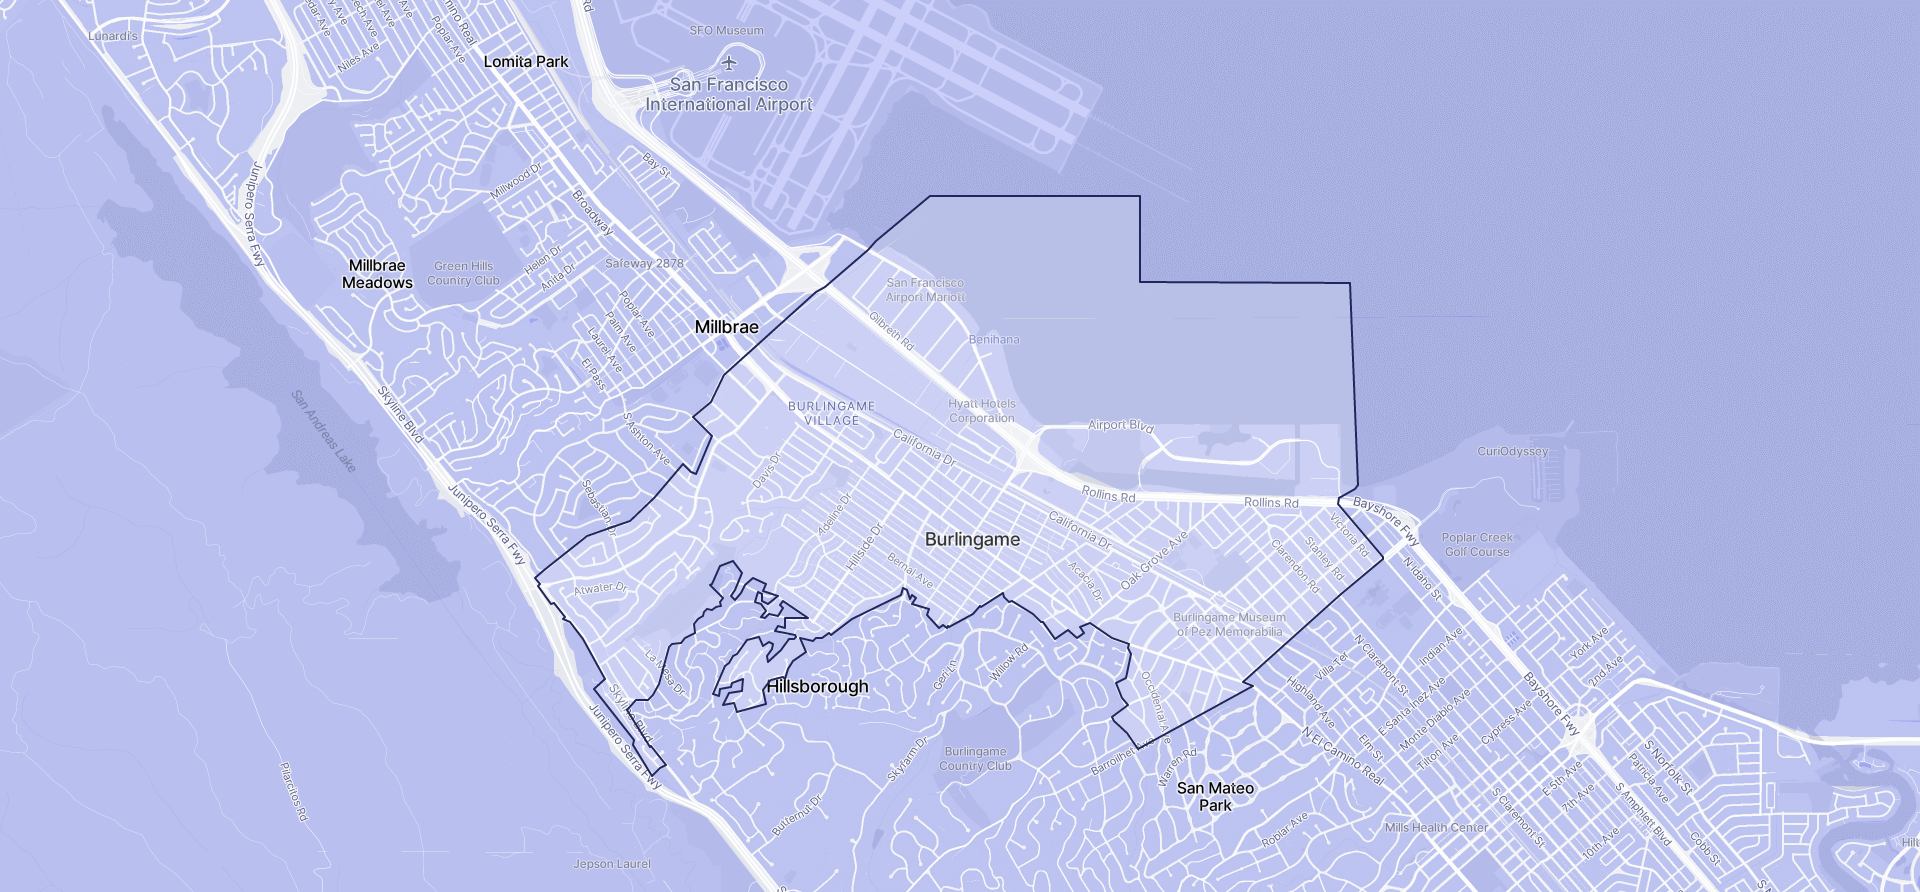 Image of Burlingame boundaries on a map.